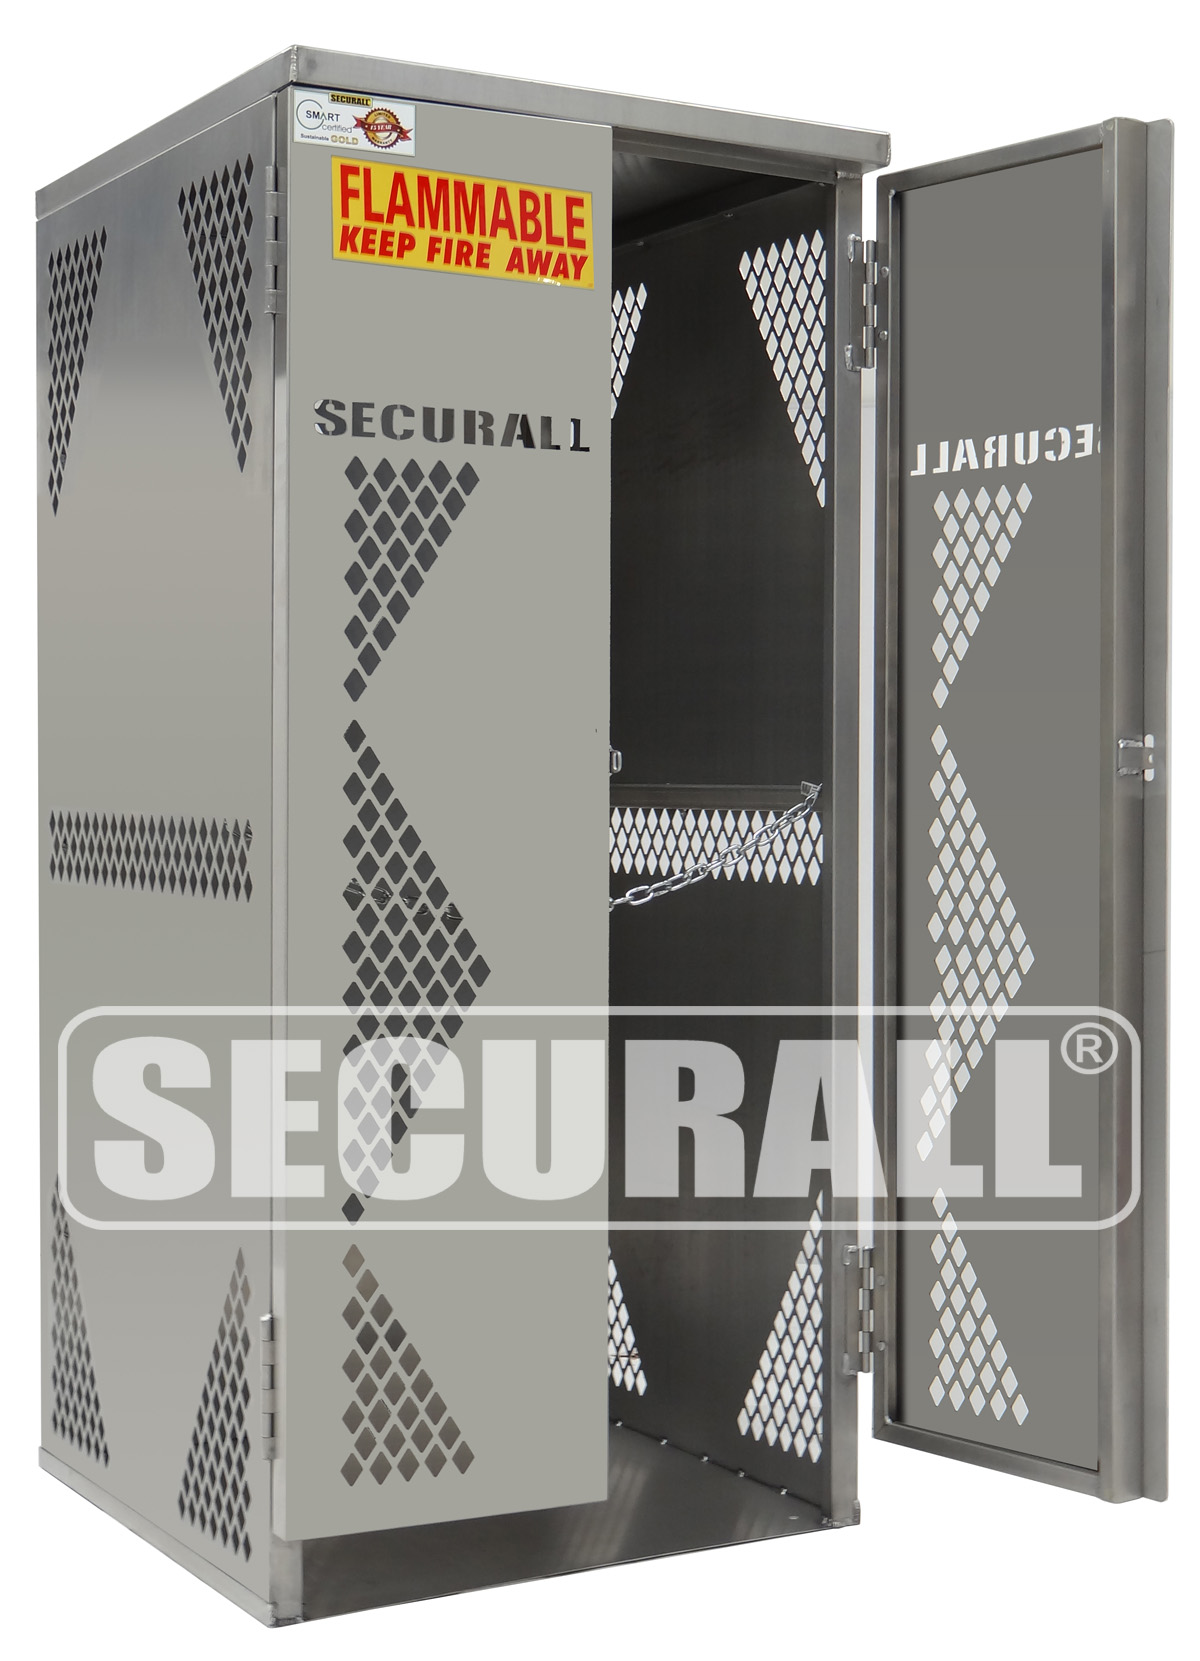 Securall 174 Cylinder Amp Tank Storage Cabinets Propane Gas